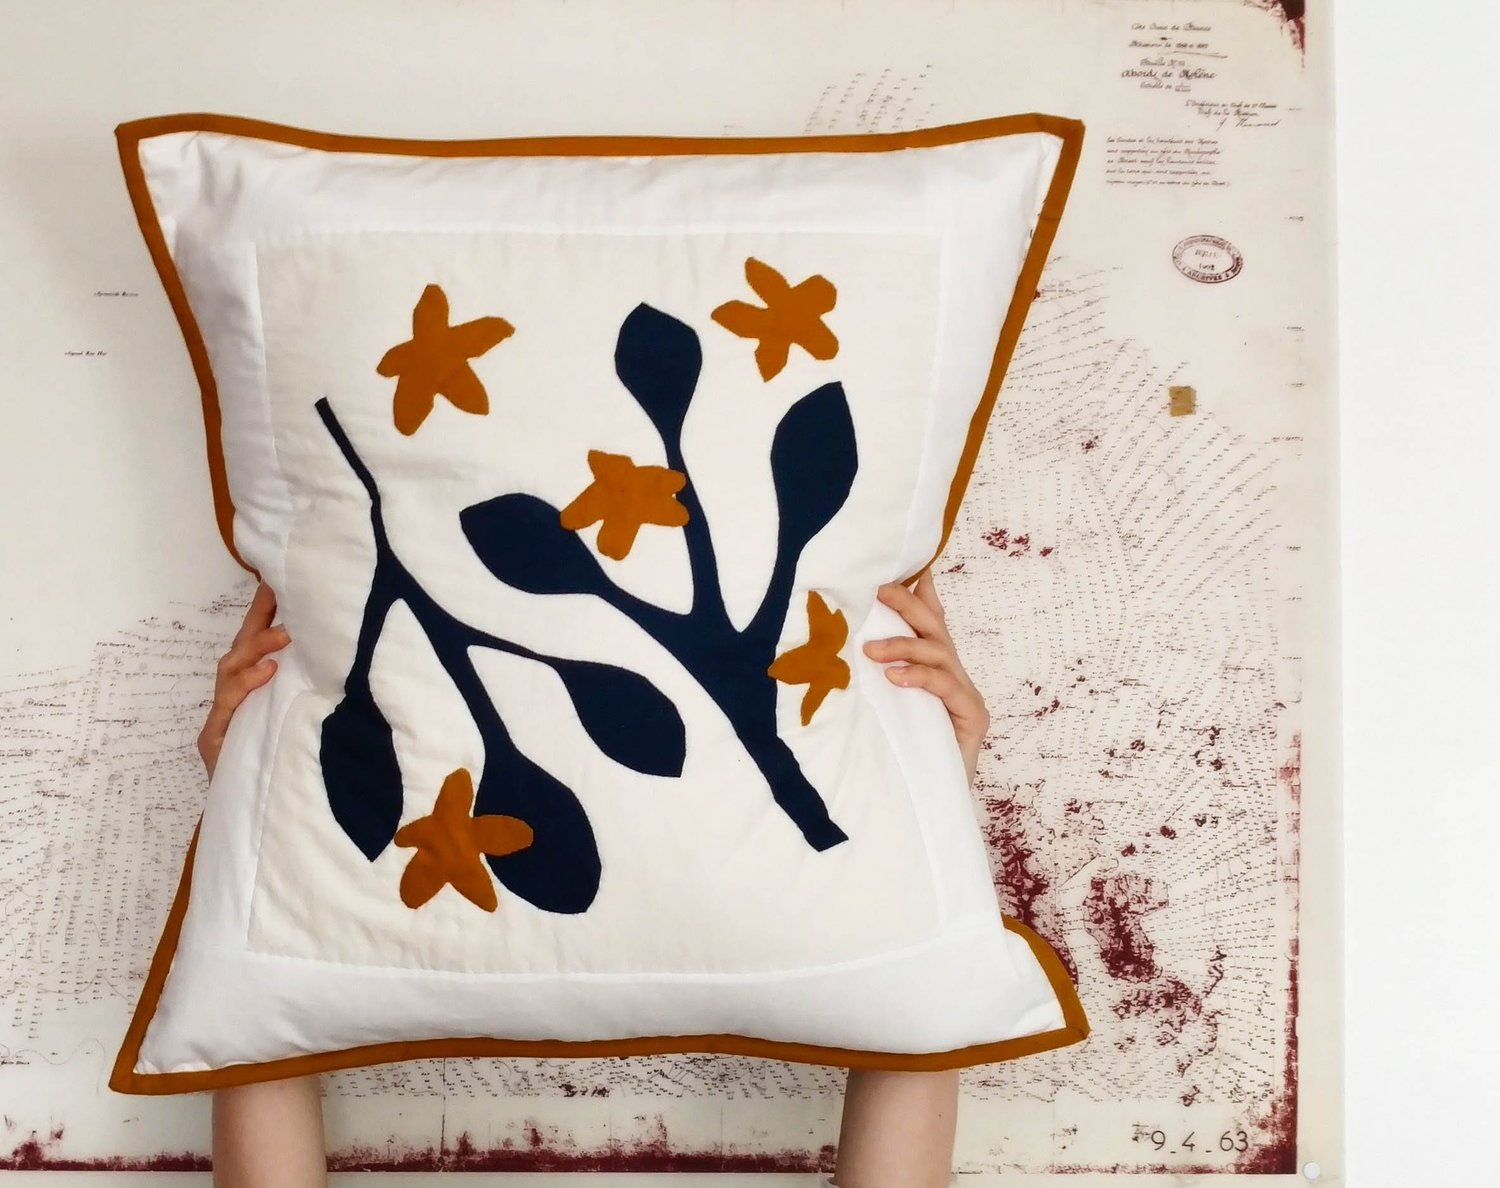 Appliquéd pillow.